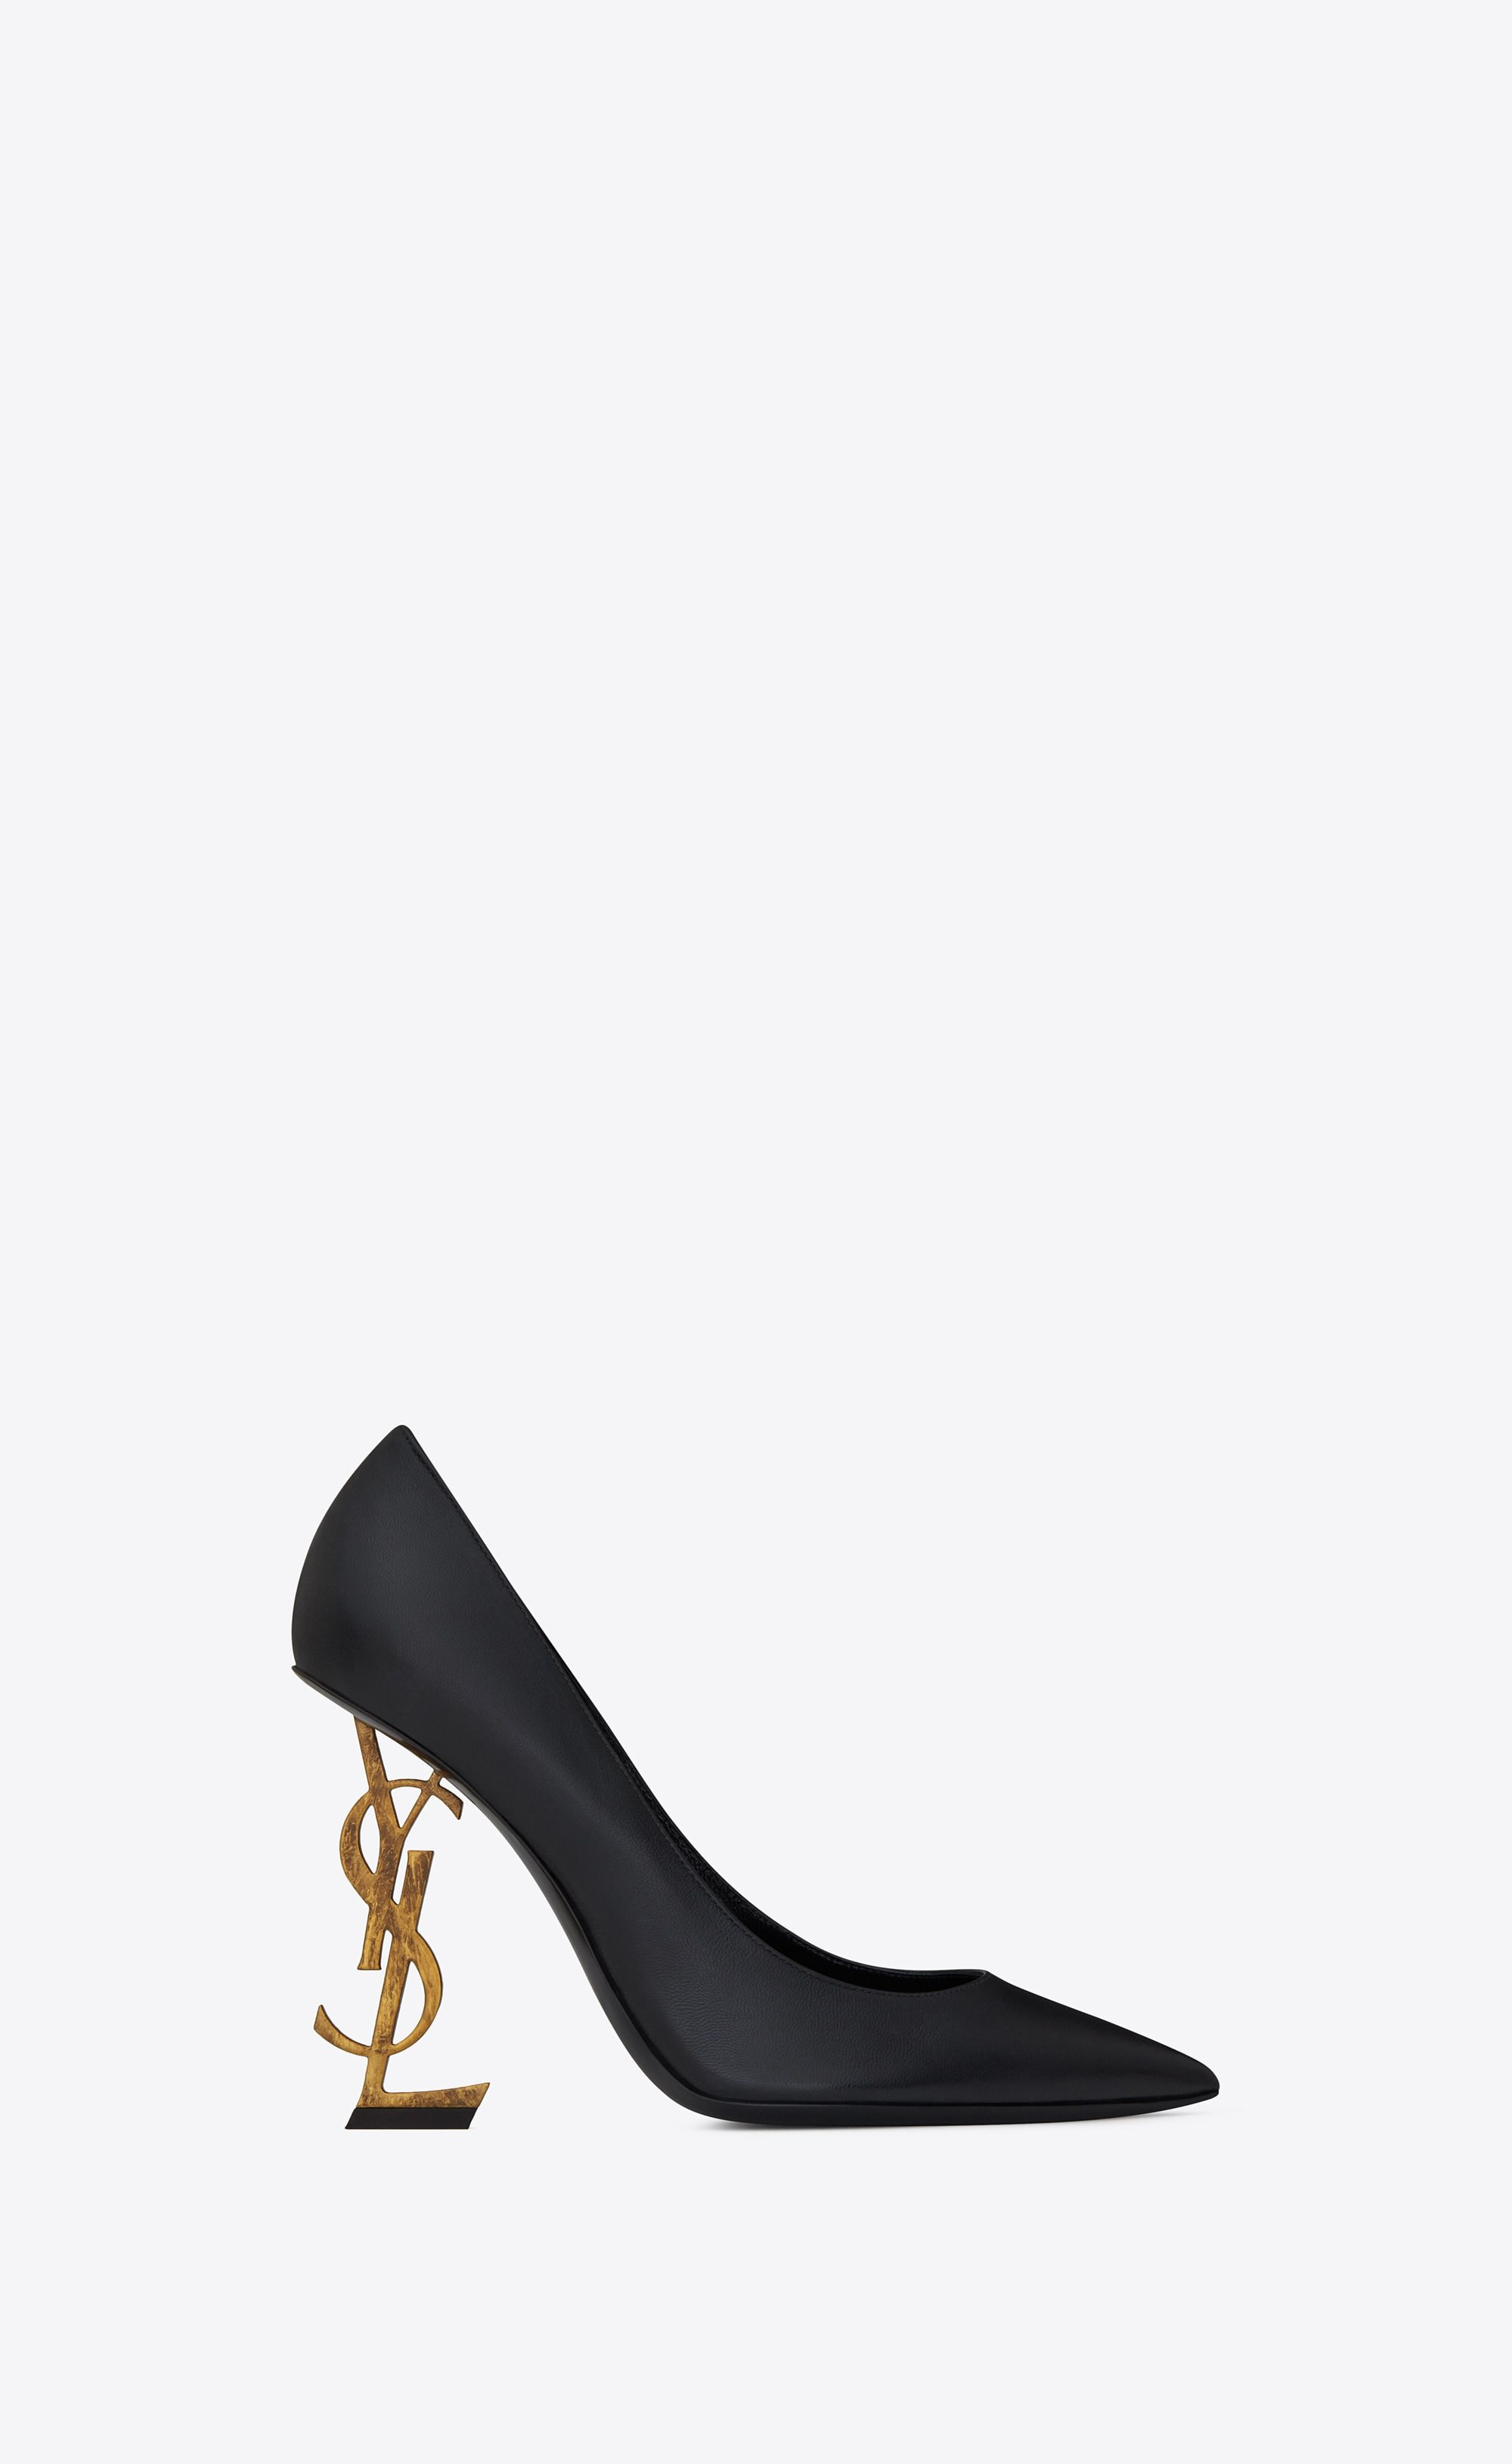 4617f1148d60 Saint Laurent Opyum Pump In Leather With Gold Toned Heel